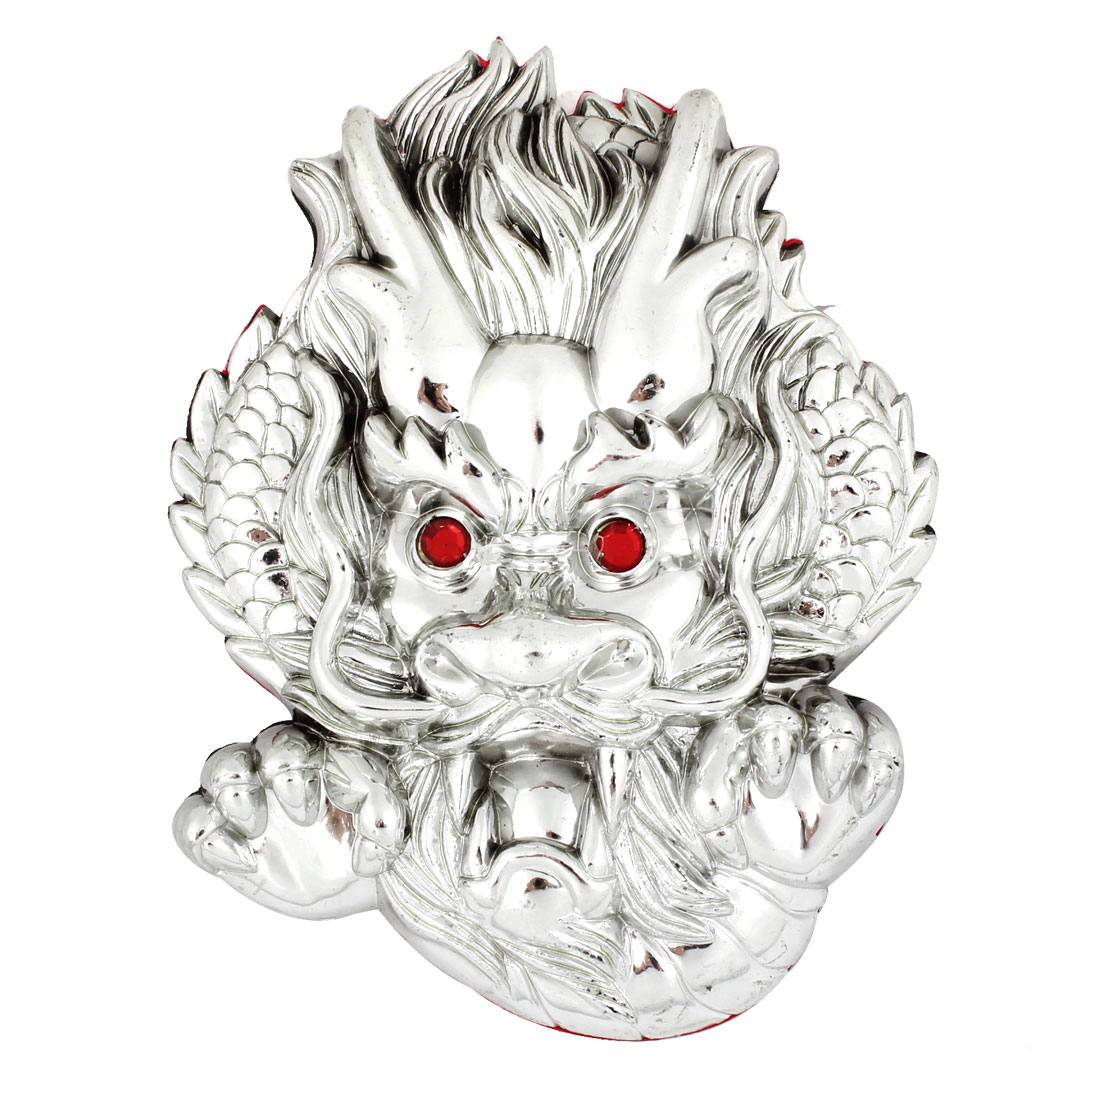 Red Rhinestone Accent Eyes Silver Tone 3D Plastic Dragon Shaped Sticker for Car